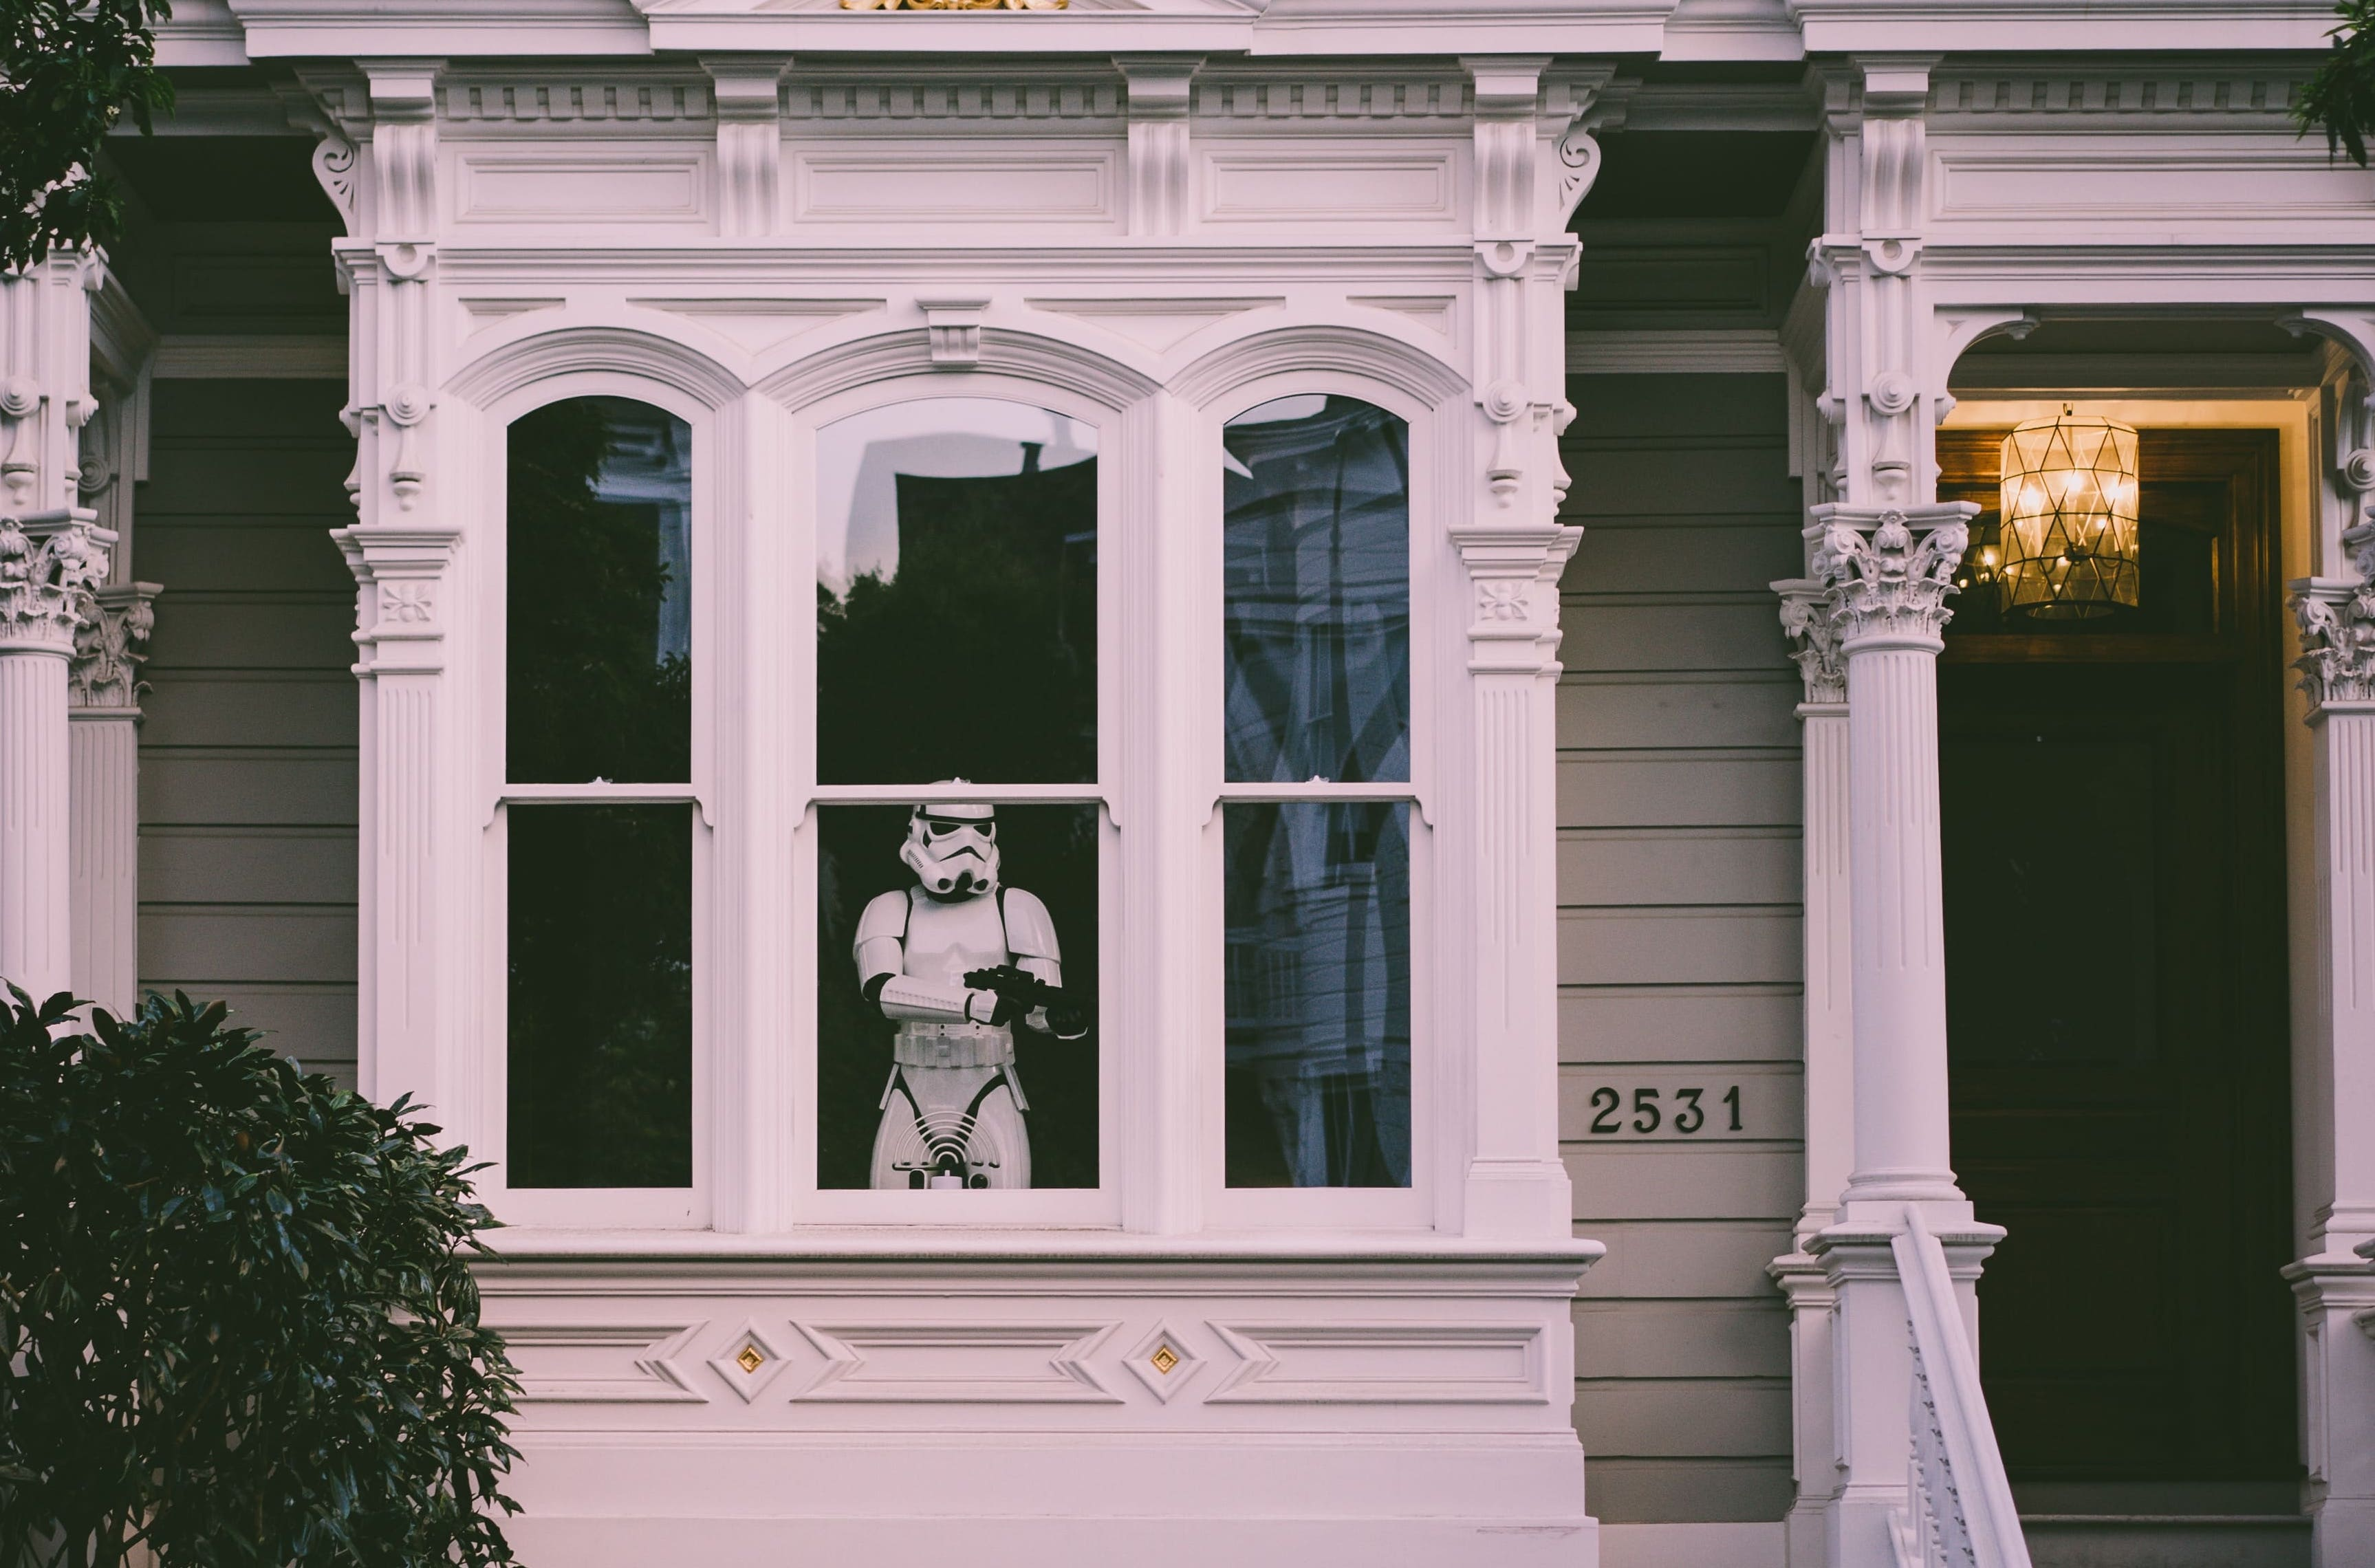 storm trooper standing guard